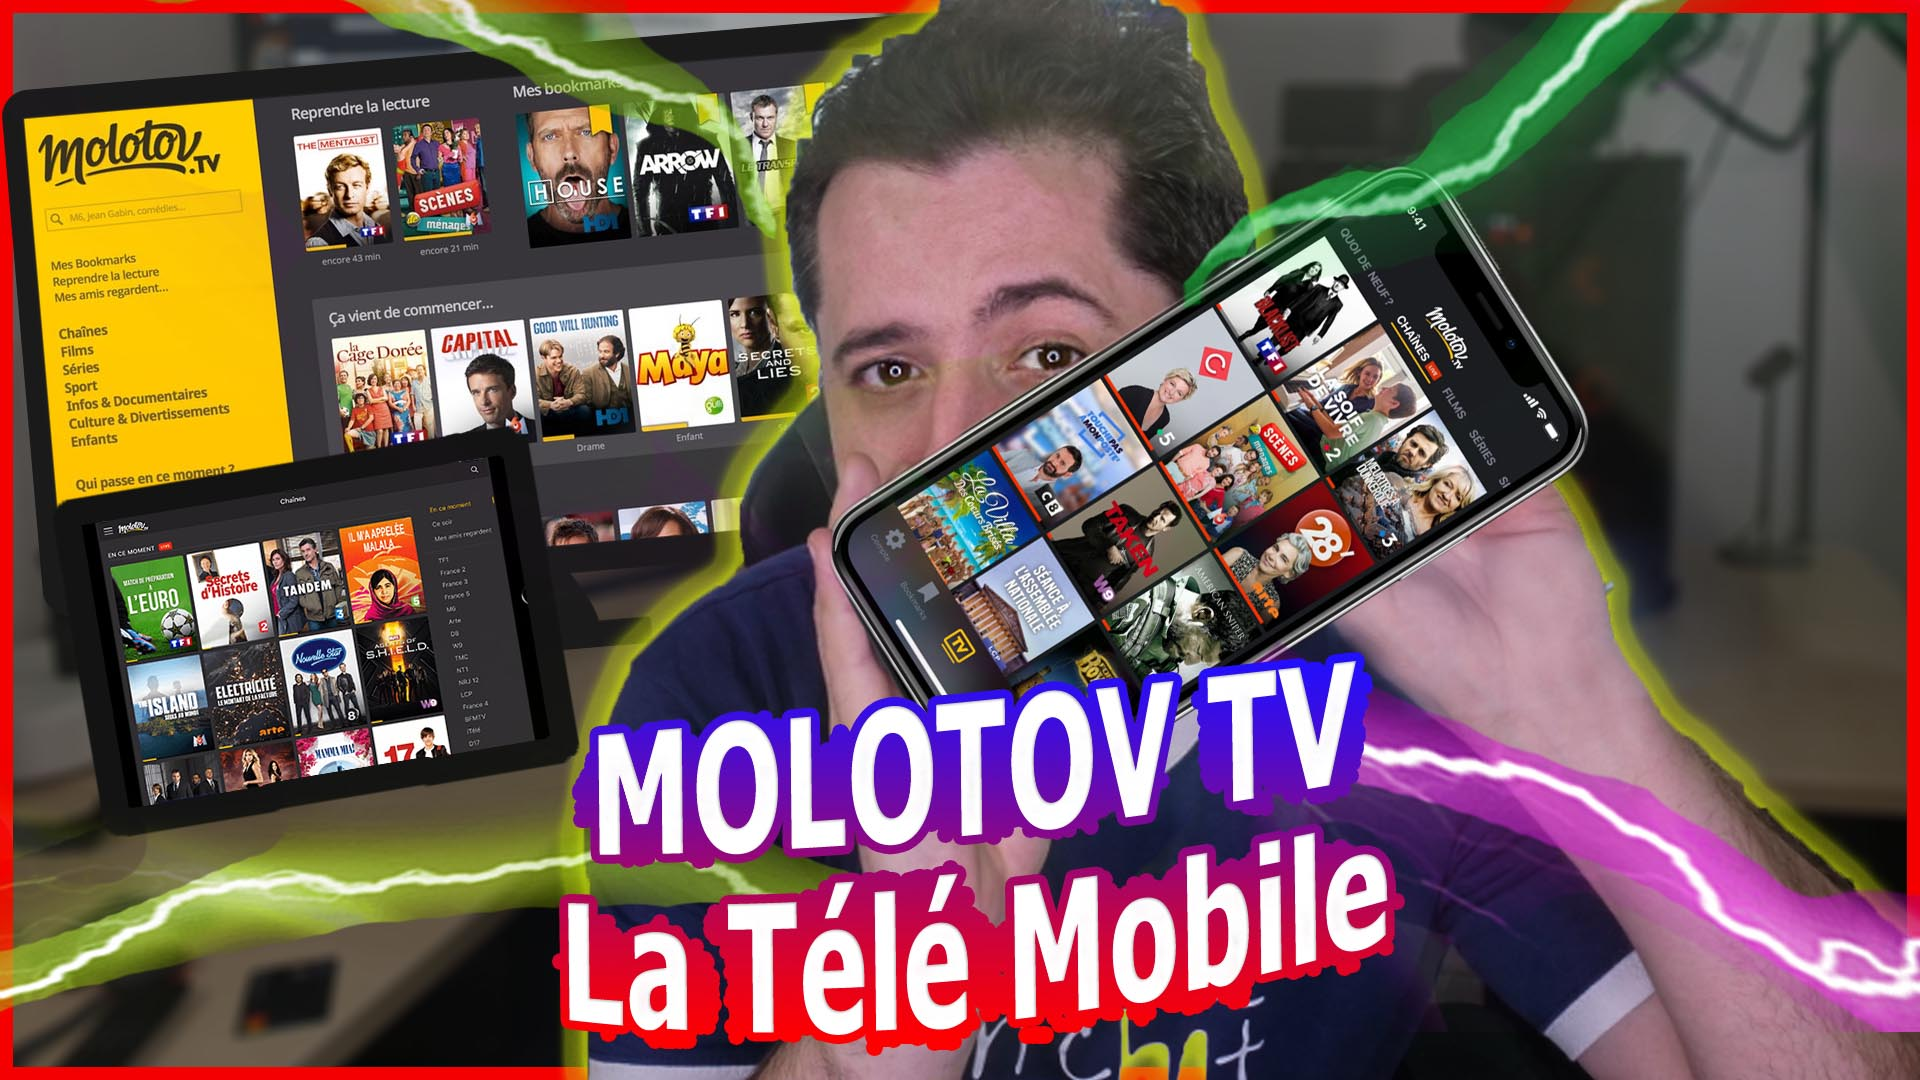 La TV du futur : Application Molotov TV pour Android Iphone Windows … Replay VoD retour à 0